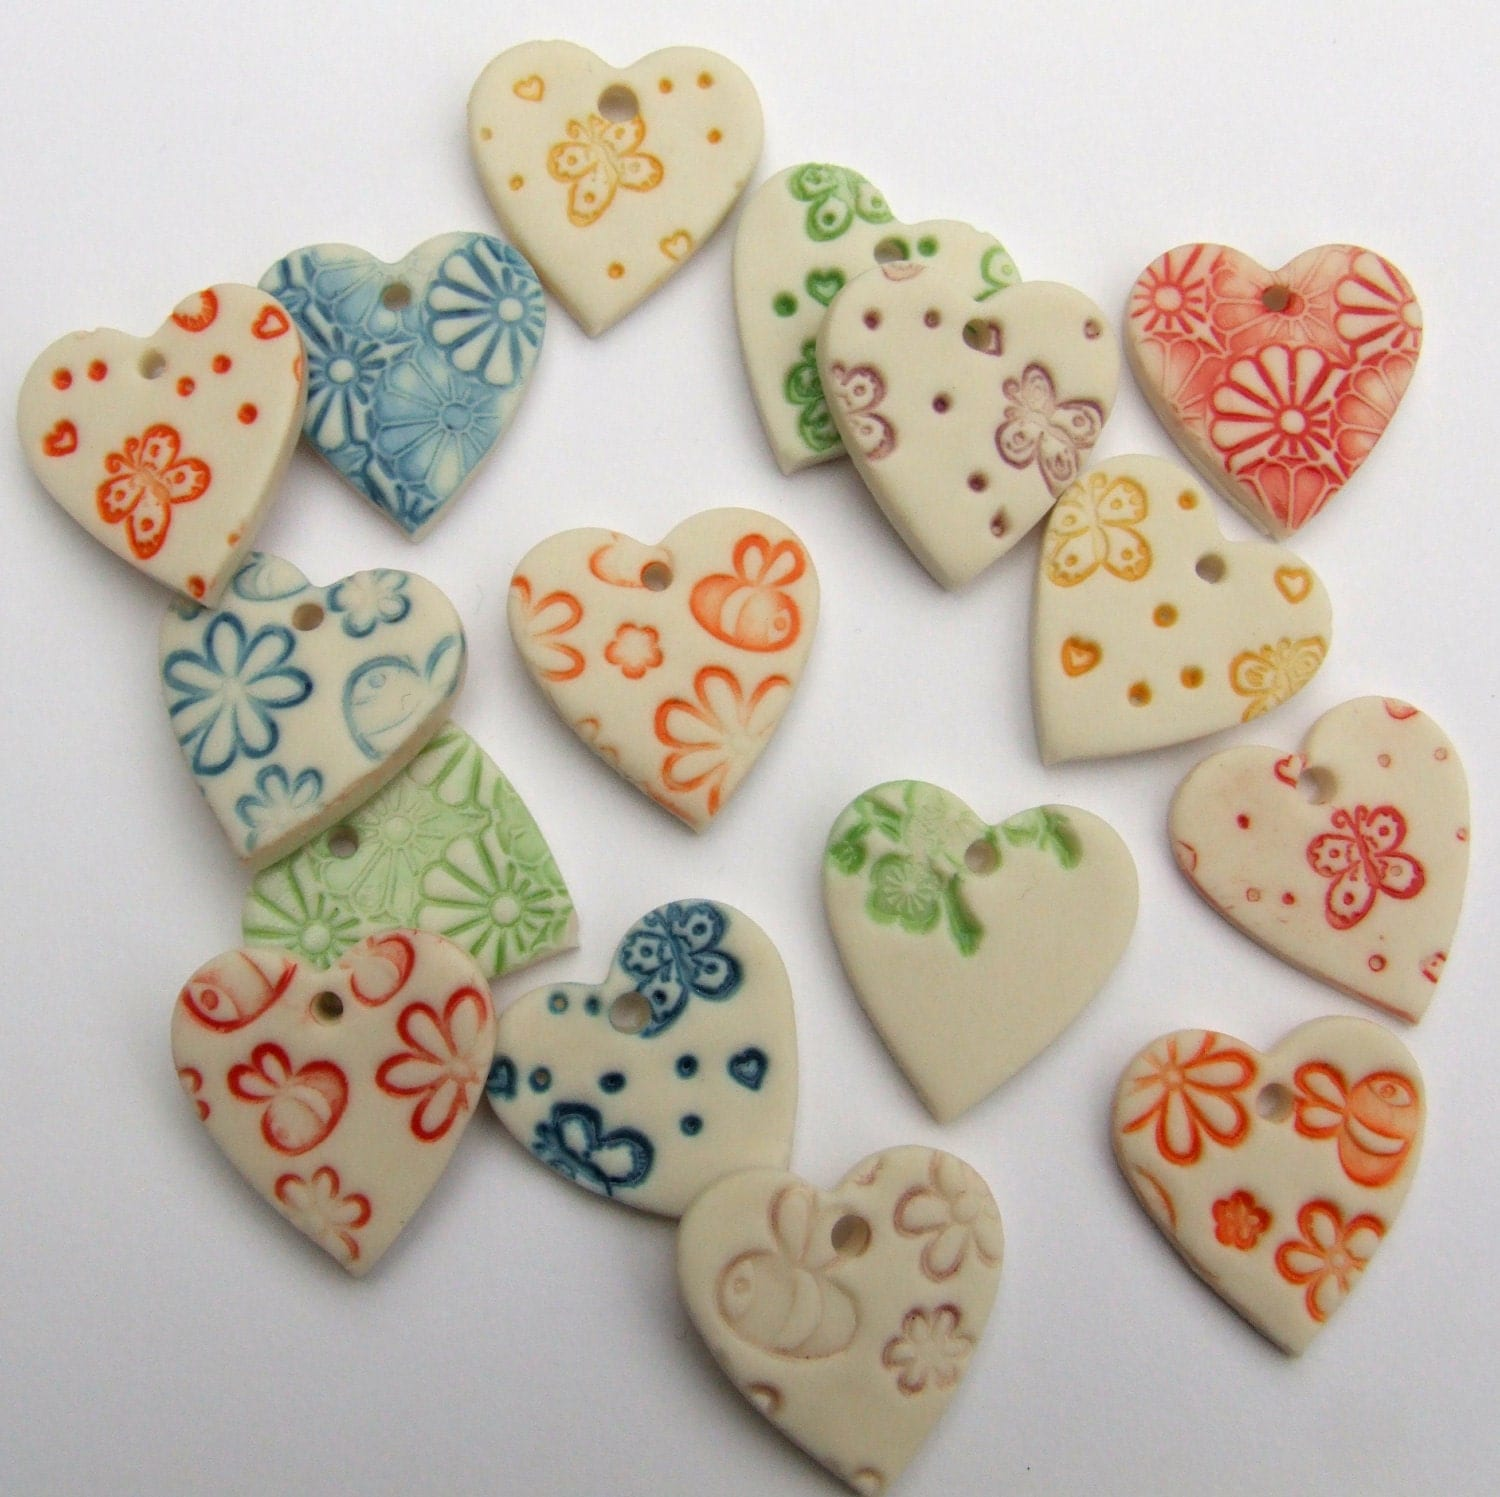 Heart pendant jewellery making pendants scrapbooking for How to sell crafts on etsy